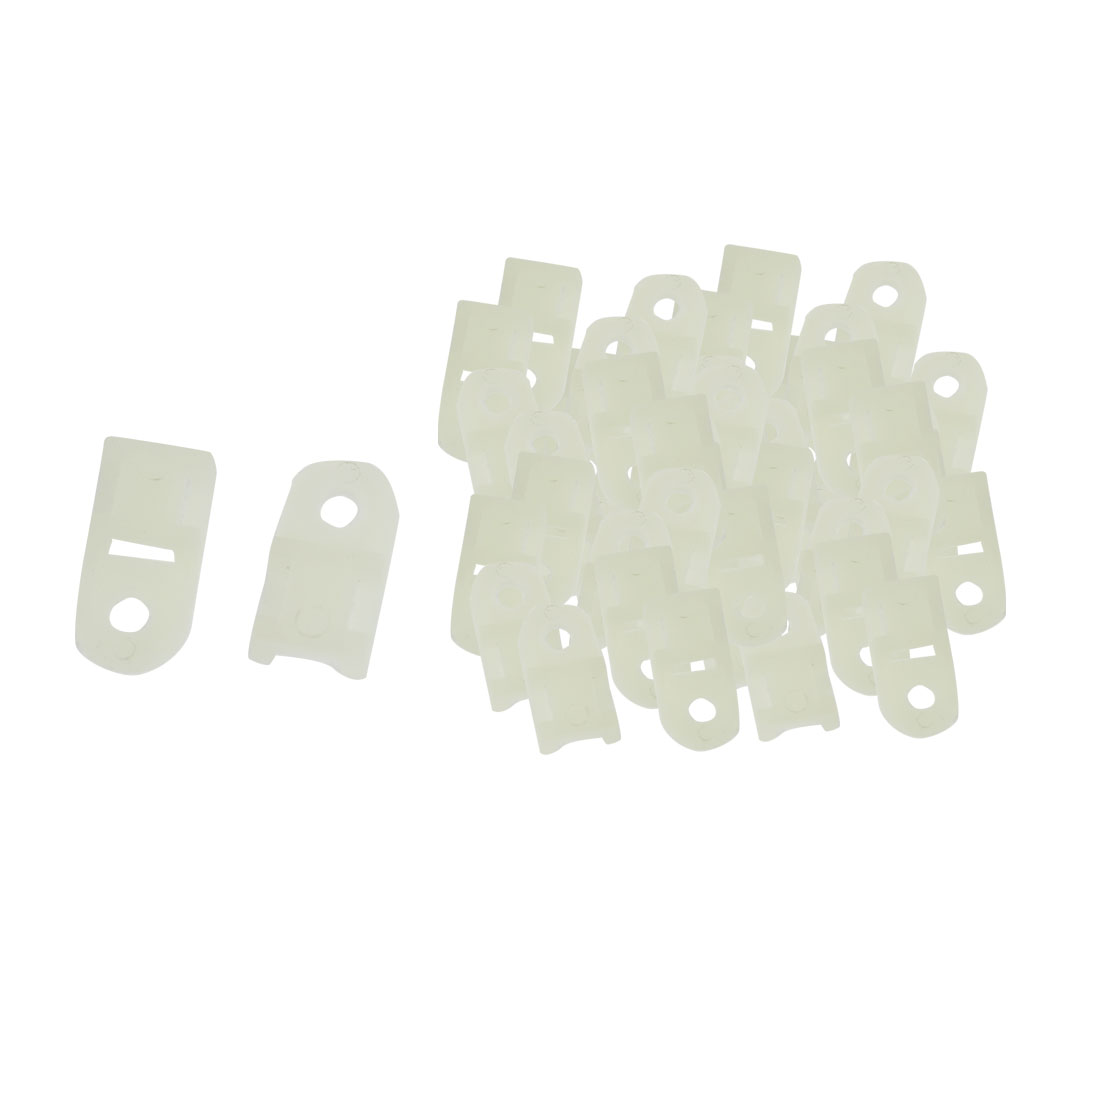 100 Pcs 5mm White Plastic Cable Tie Mount Saddle Wire Holder